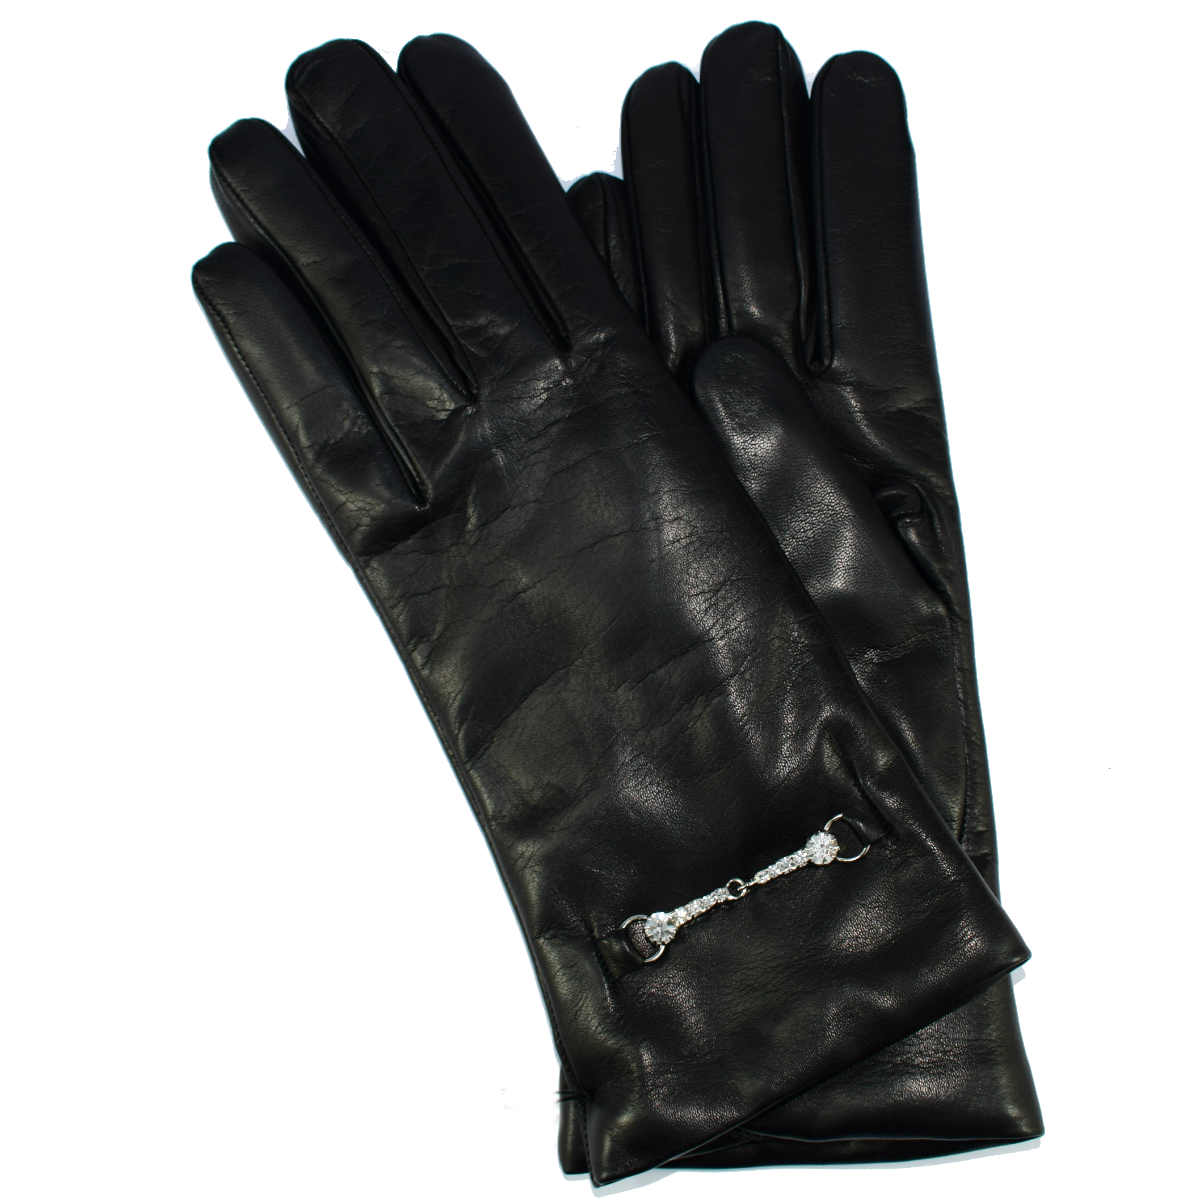 5G9 LEATHER GLOVES WITH BRILLIANT BRACKET by Bottega Fiorentina